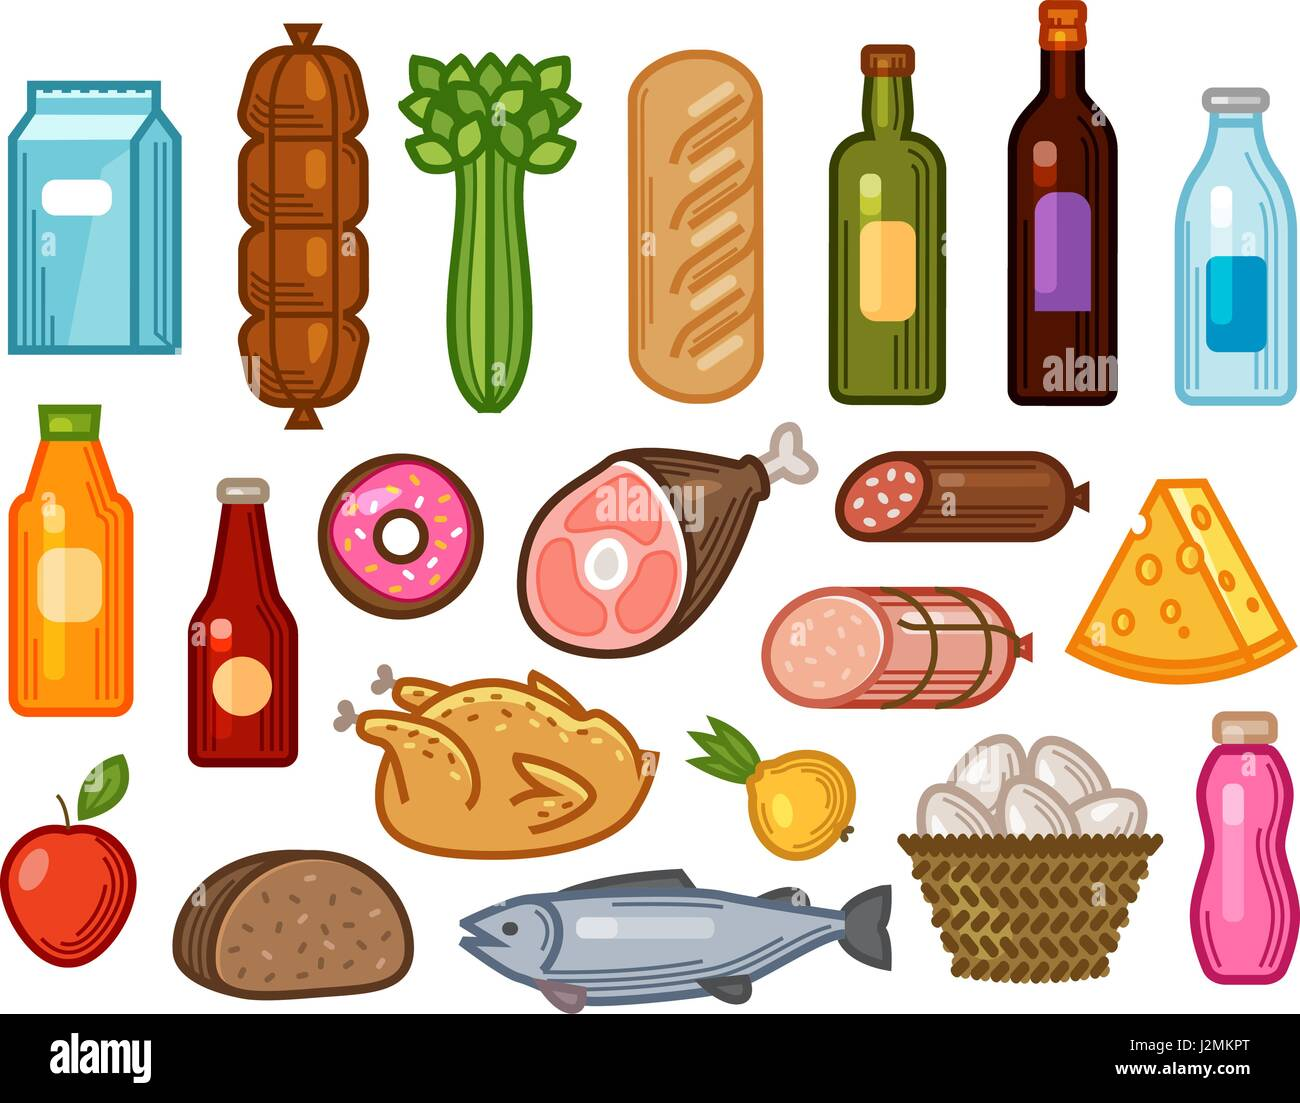 Cooking Concept Flat Icons Set Stock Vector: Food And Drinks Icons Set. Grocery Shopping Concept